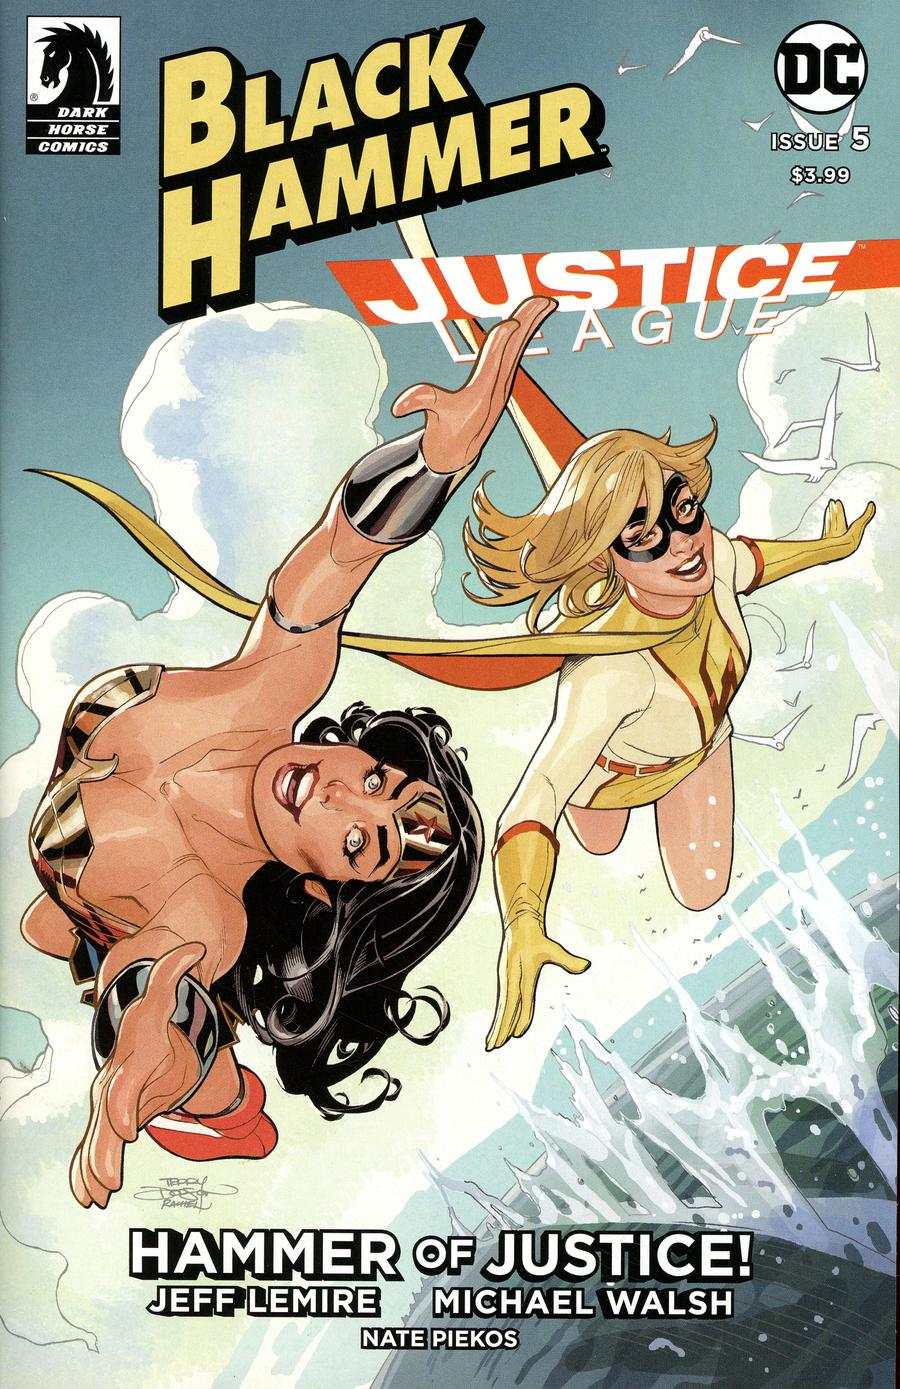 Black Hammer Justice League Hammer Of Justice #5 Cover E Variant Terry Dodson Cover